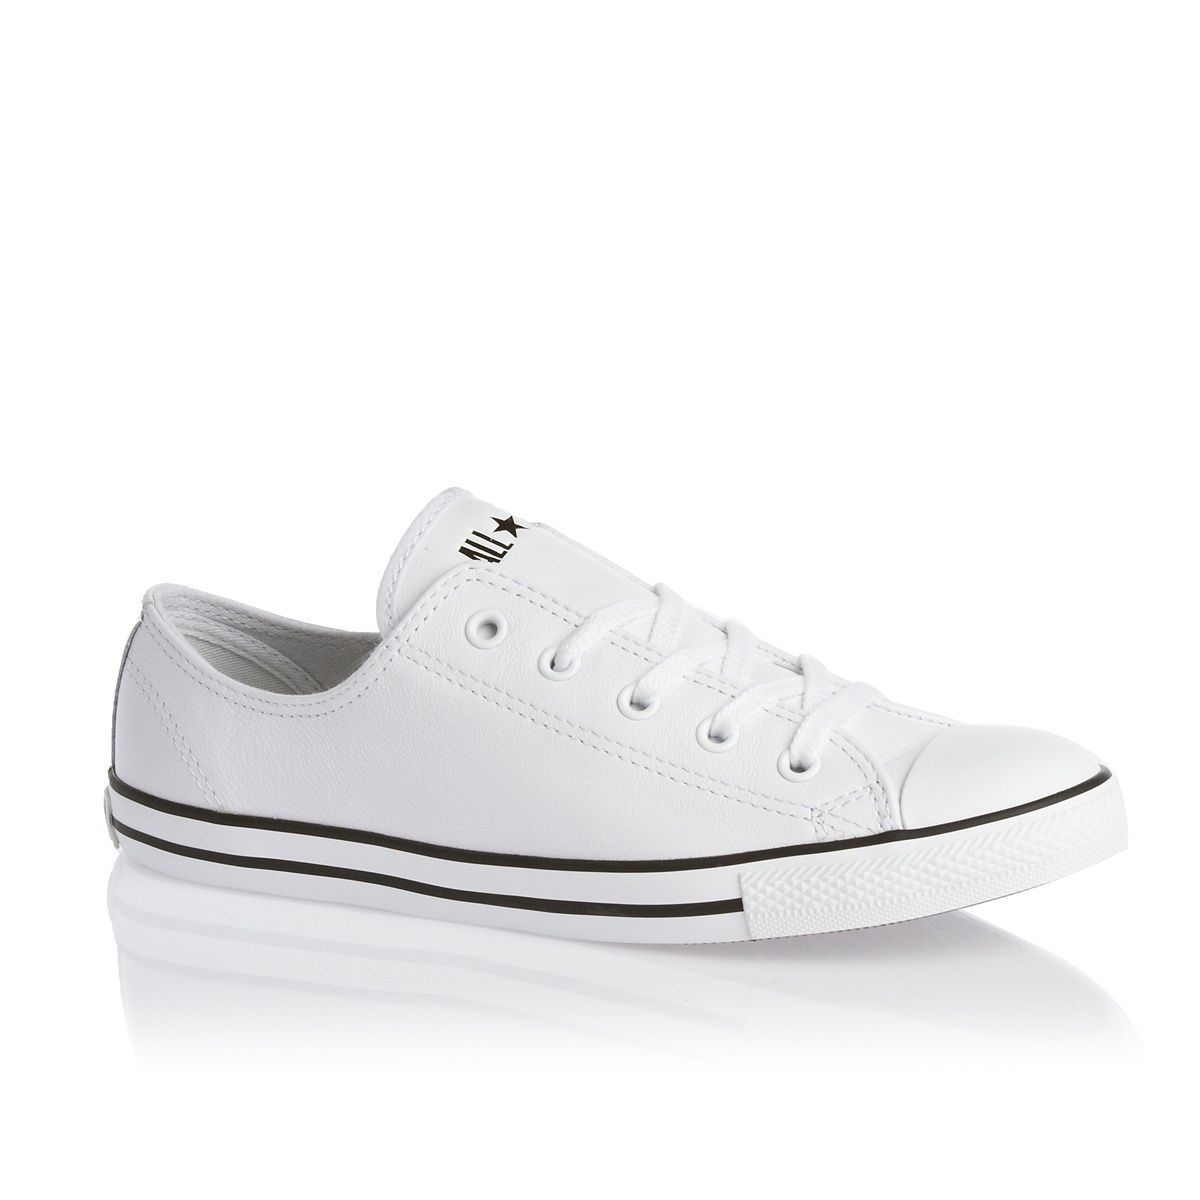 Converse - Ox Chuck Taylor All Star Dainty Shoes